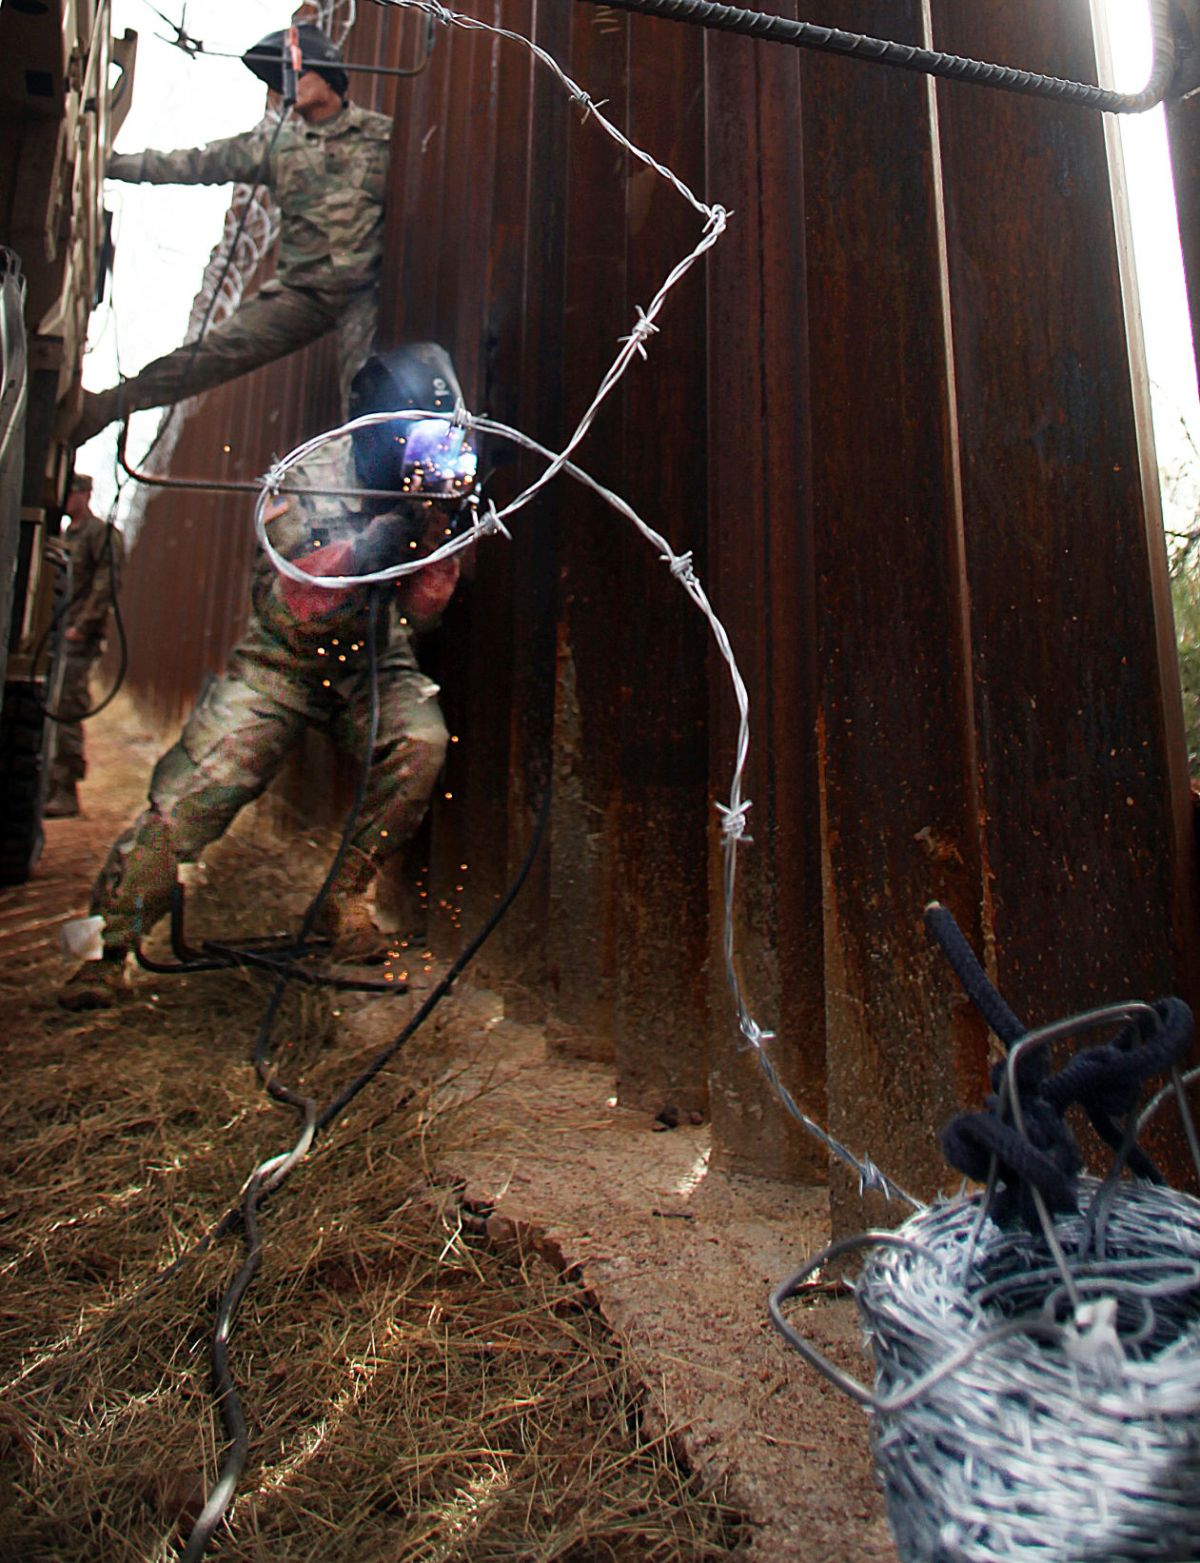 hight resolution of troops add more wire to naco border fence some bisbee and naco residents speak out against wire city of bisbee considers formal condemnation